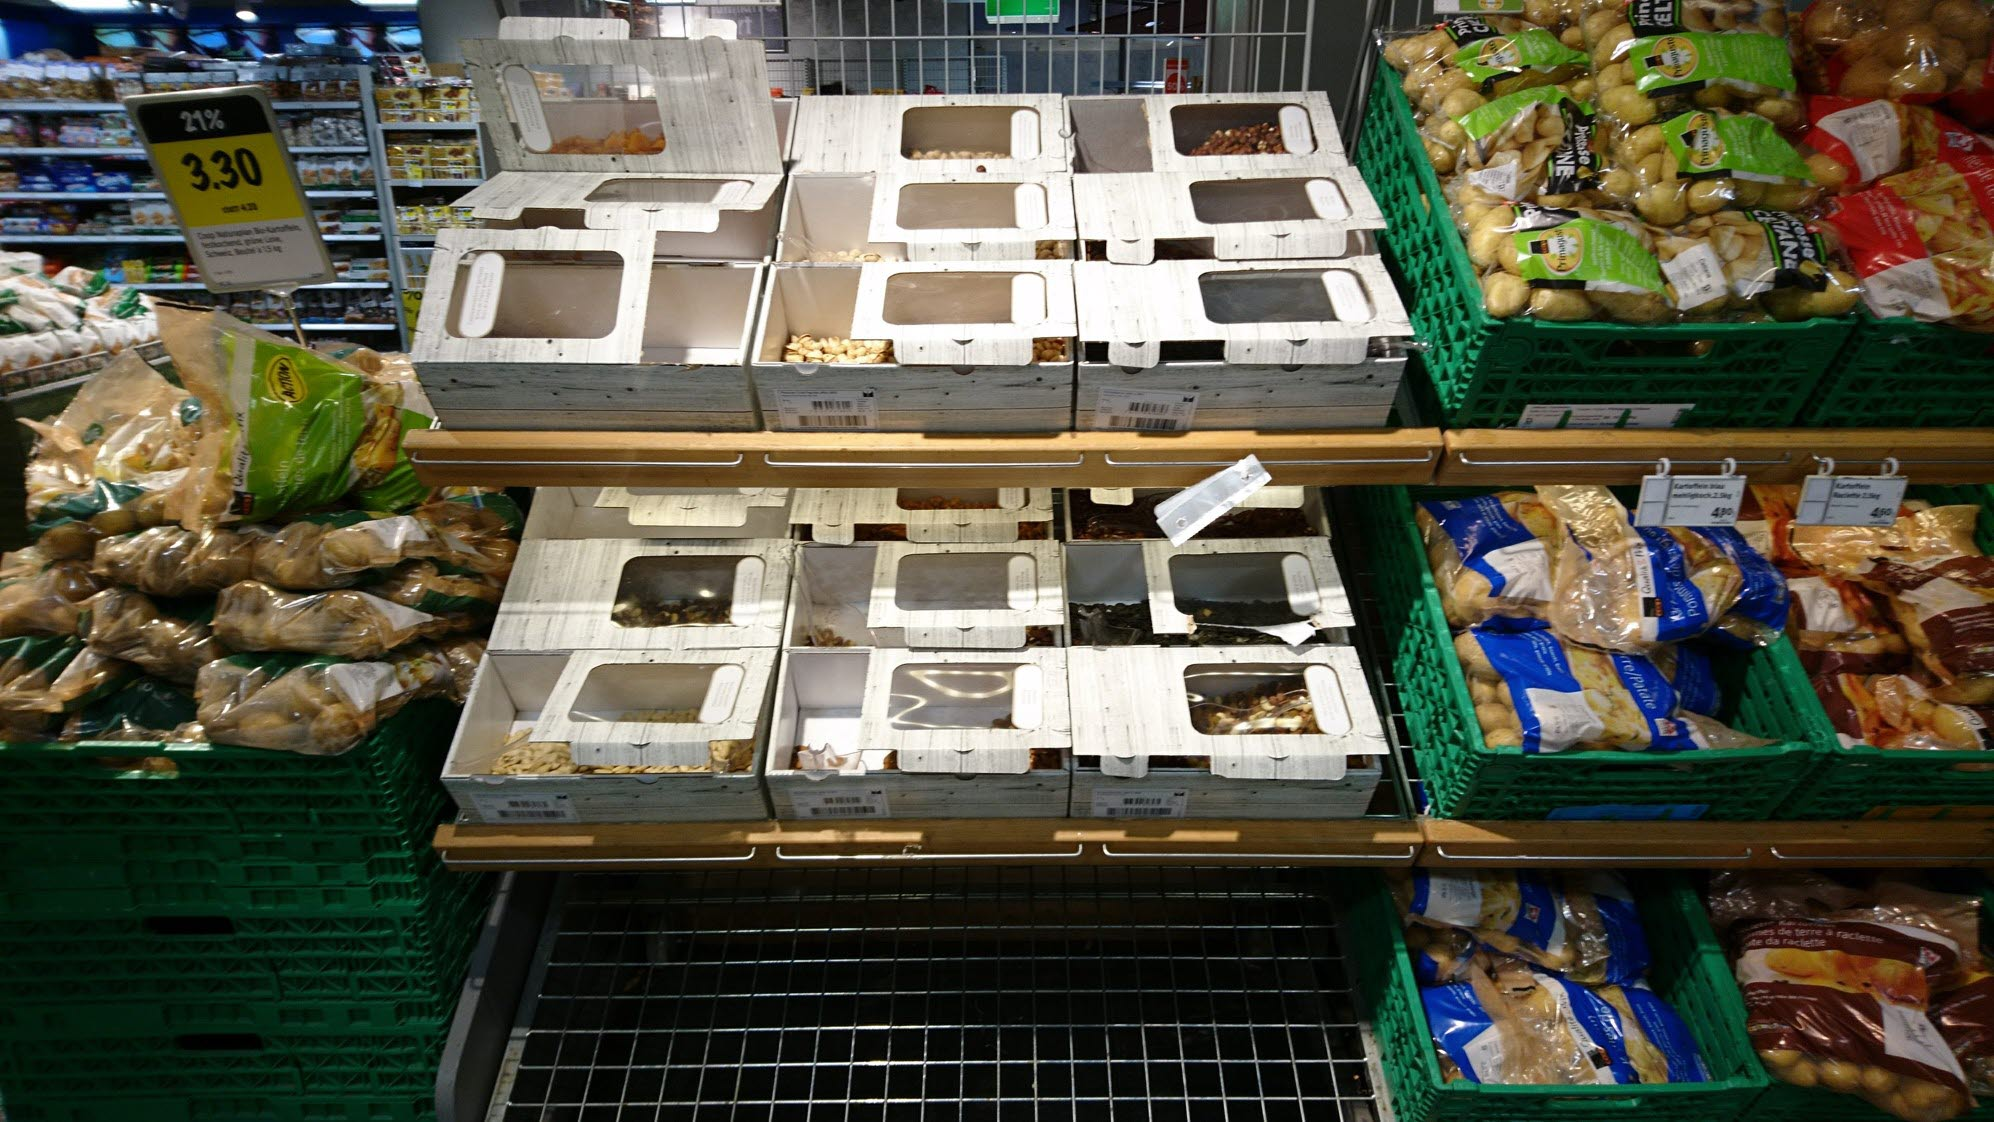 Coop_Switzerland_Bulk-Bins_HL-Display_Fresh_3.jpg